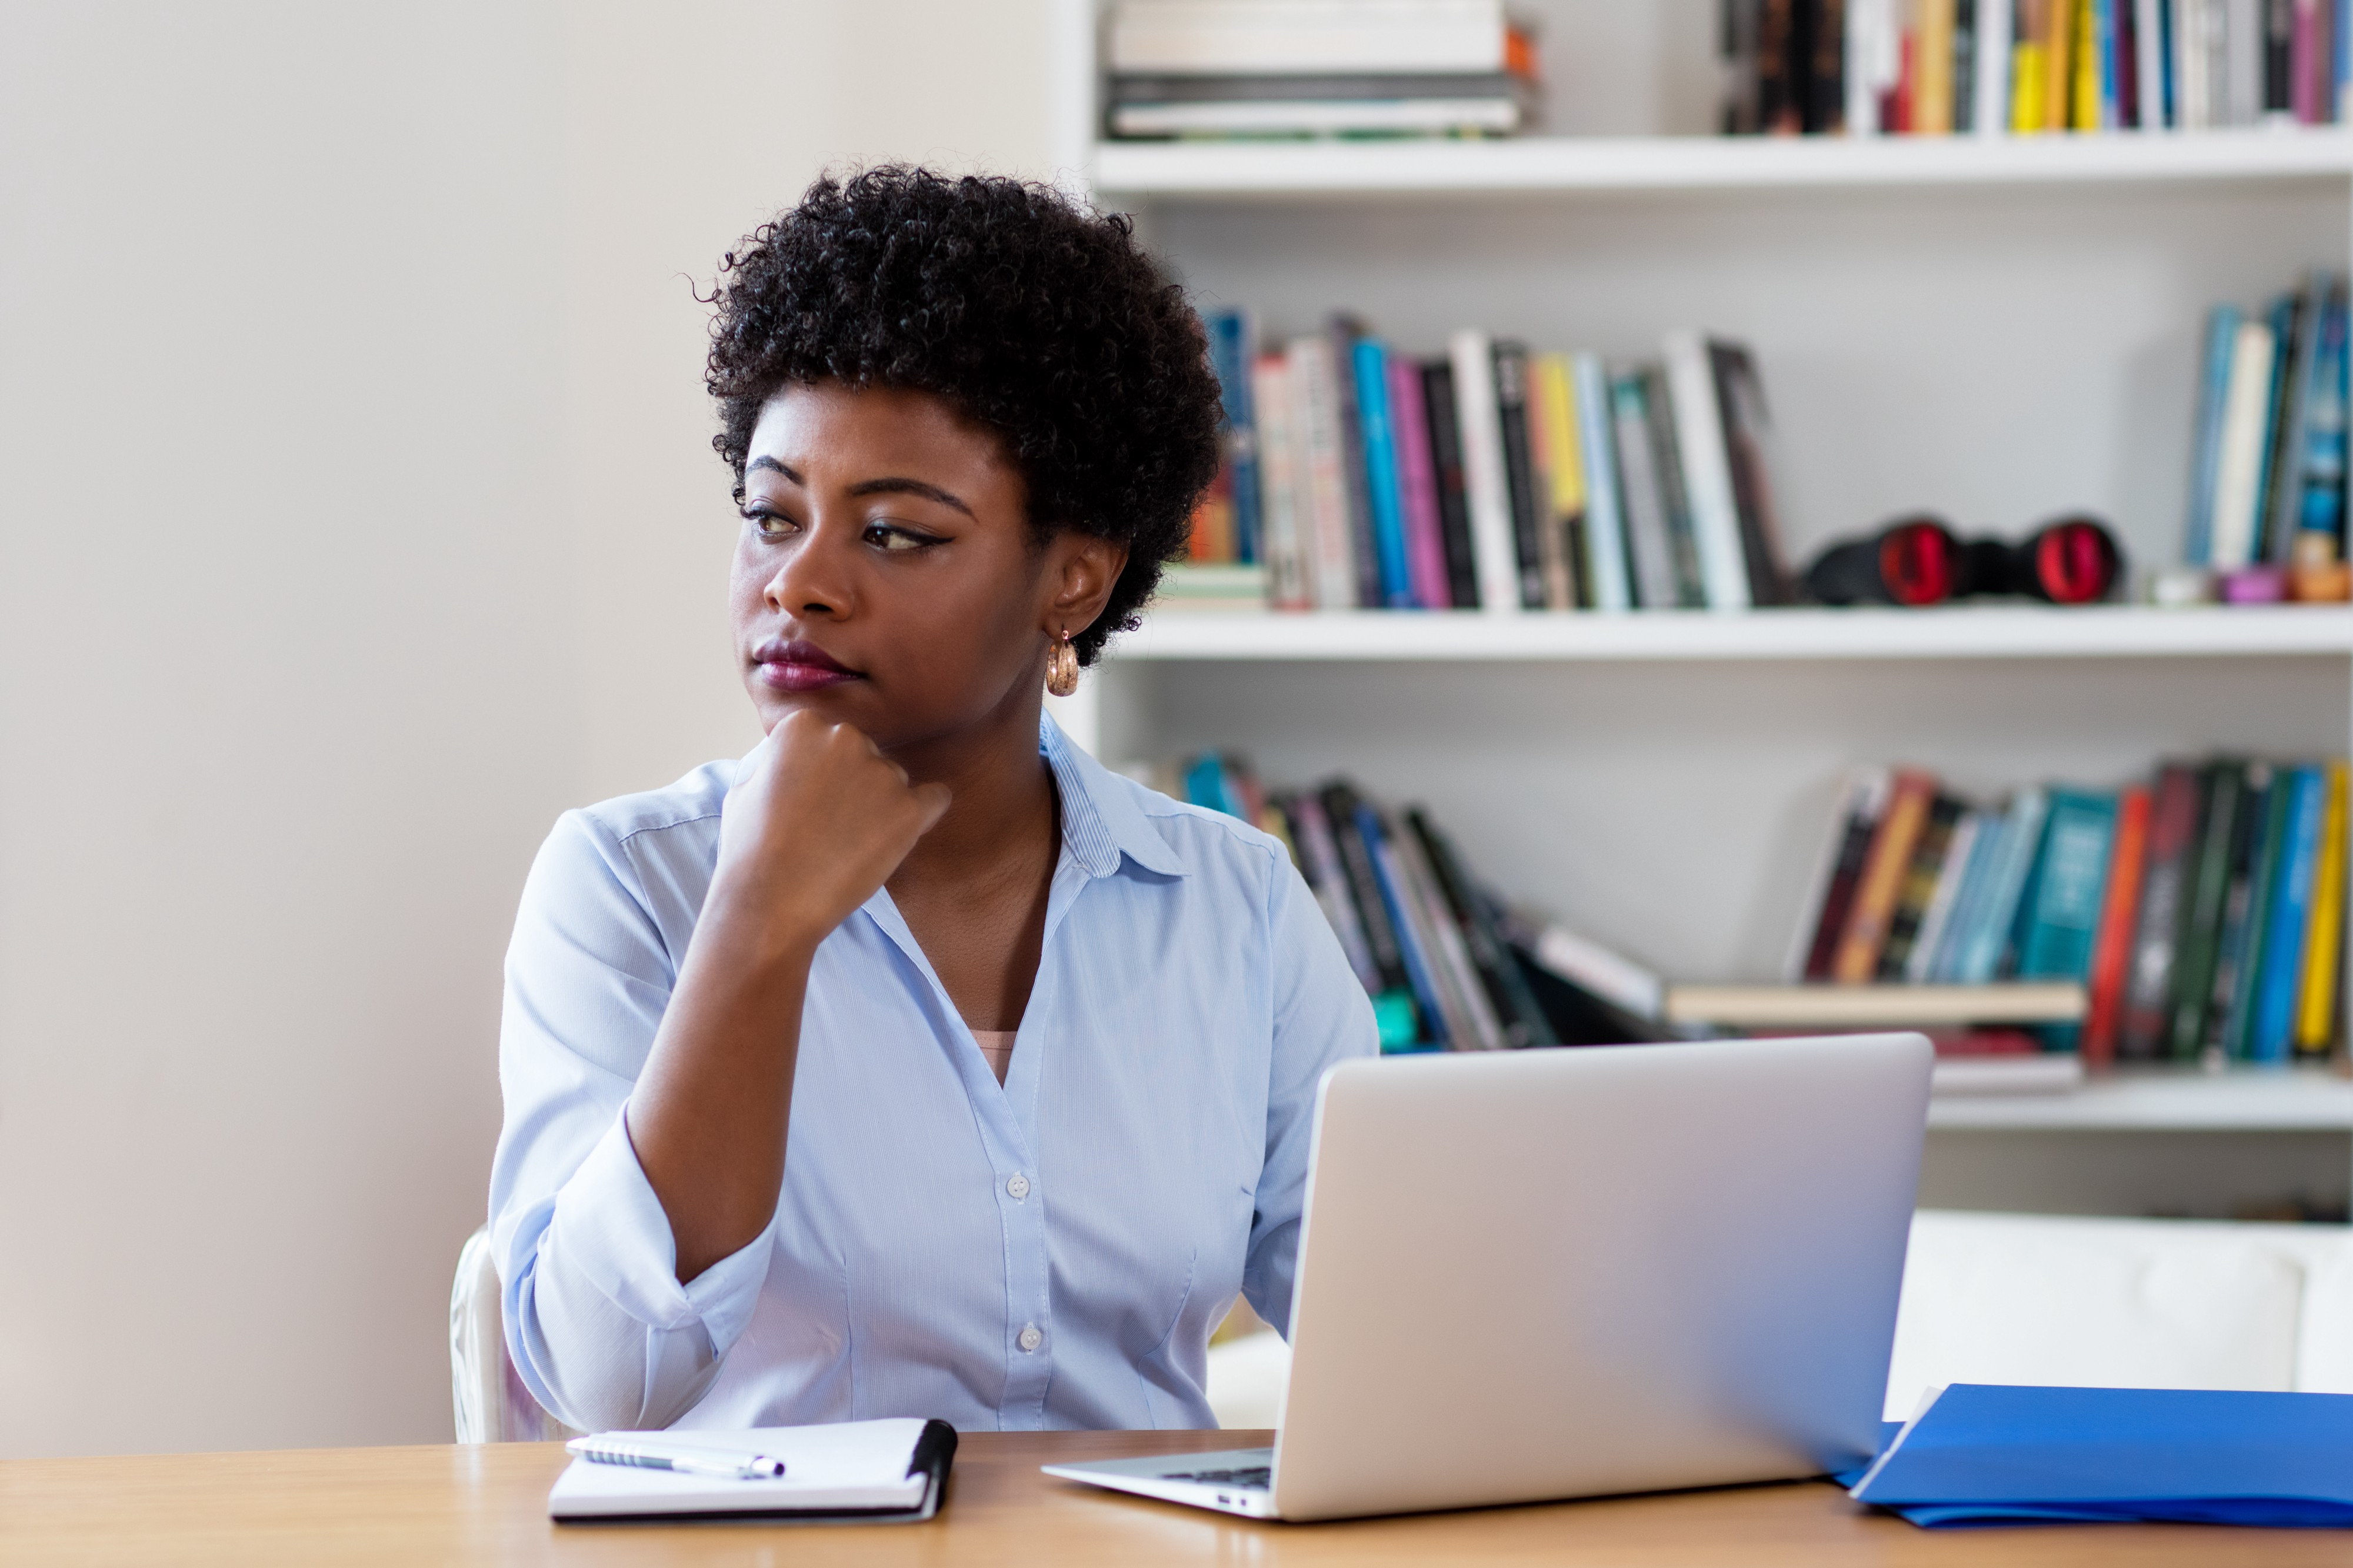 An African American businesswoman looking pensive while at home, in front of her laptop.